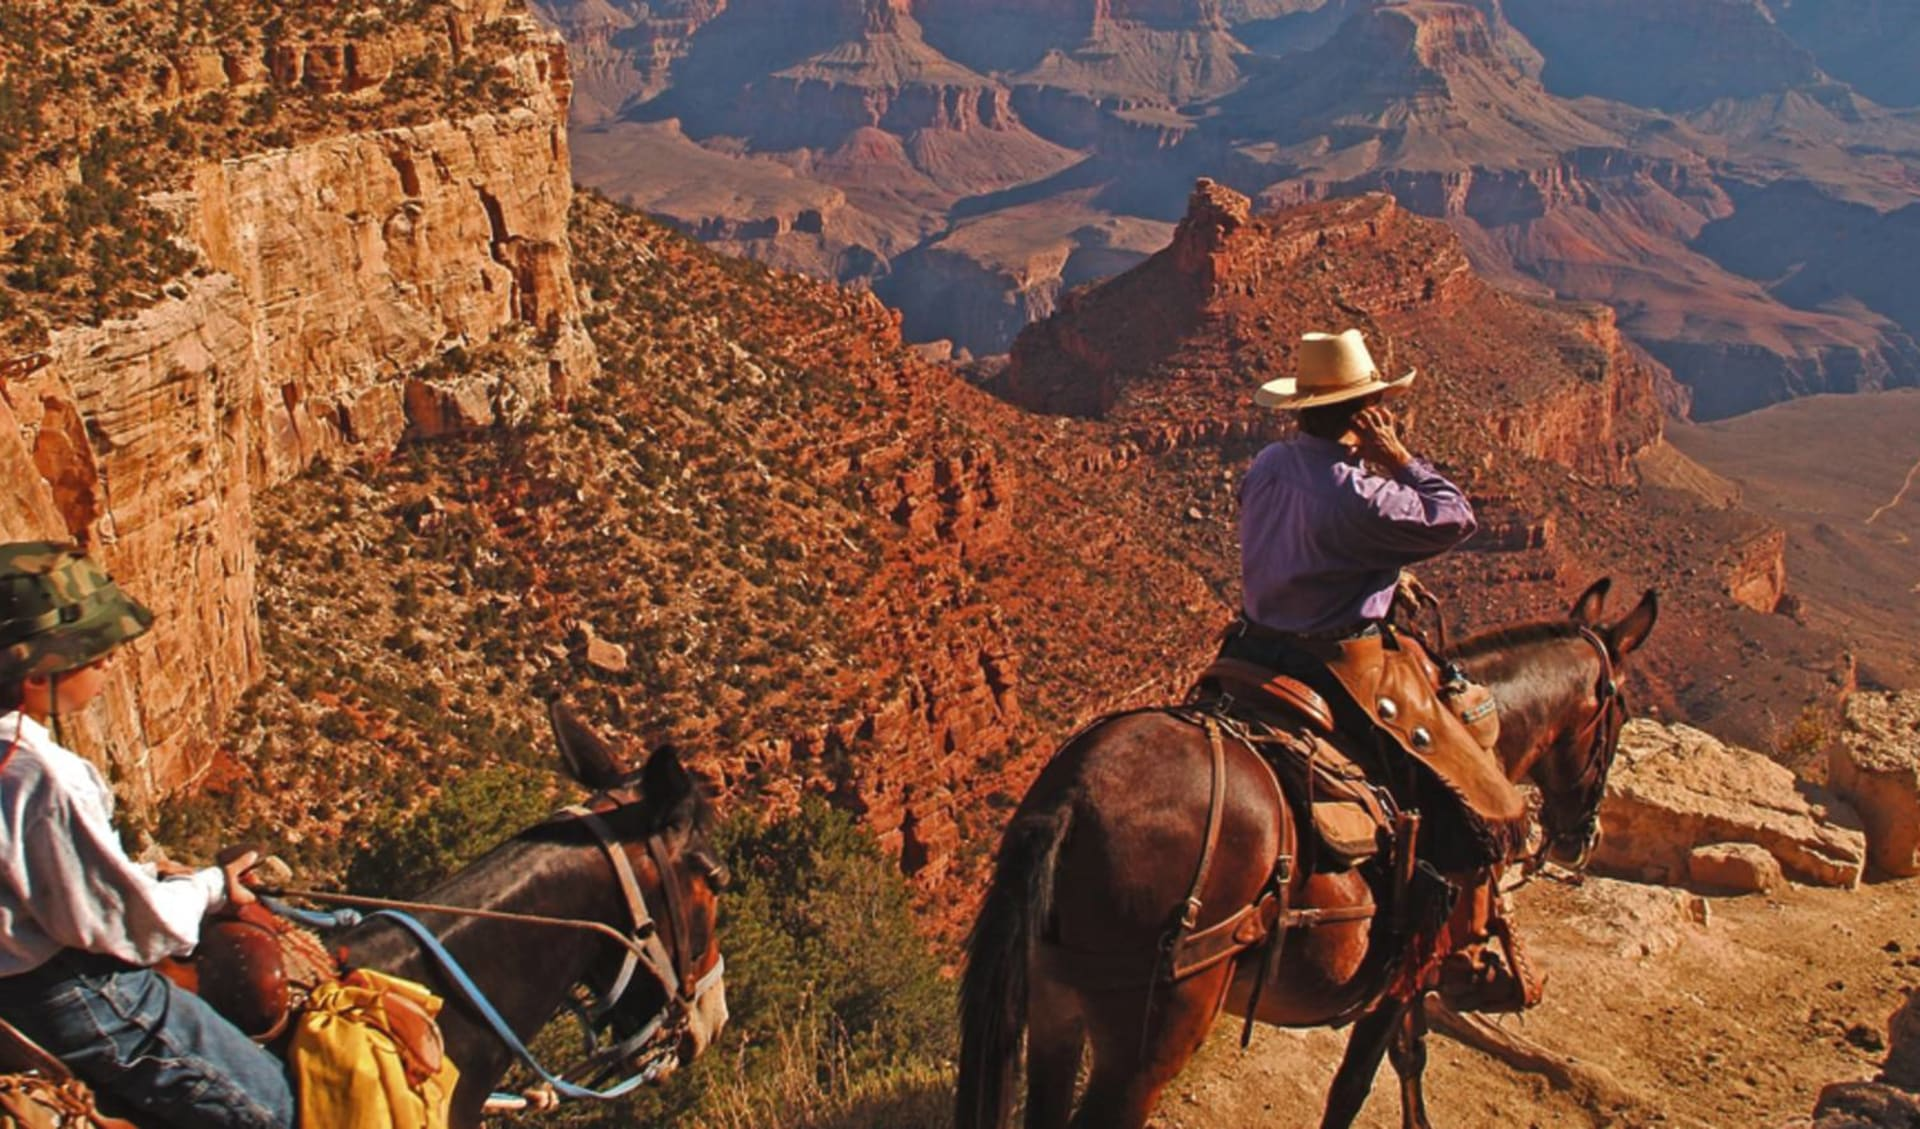 Nationalpark Wanderer ab Las Vegas: Grand Canyon Nationalpark